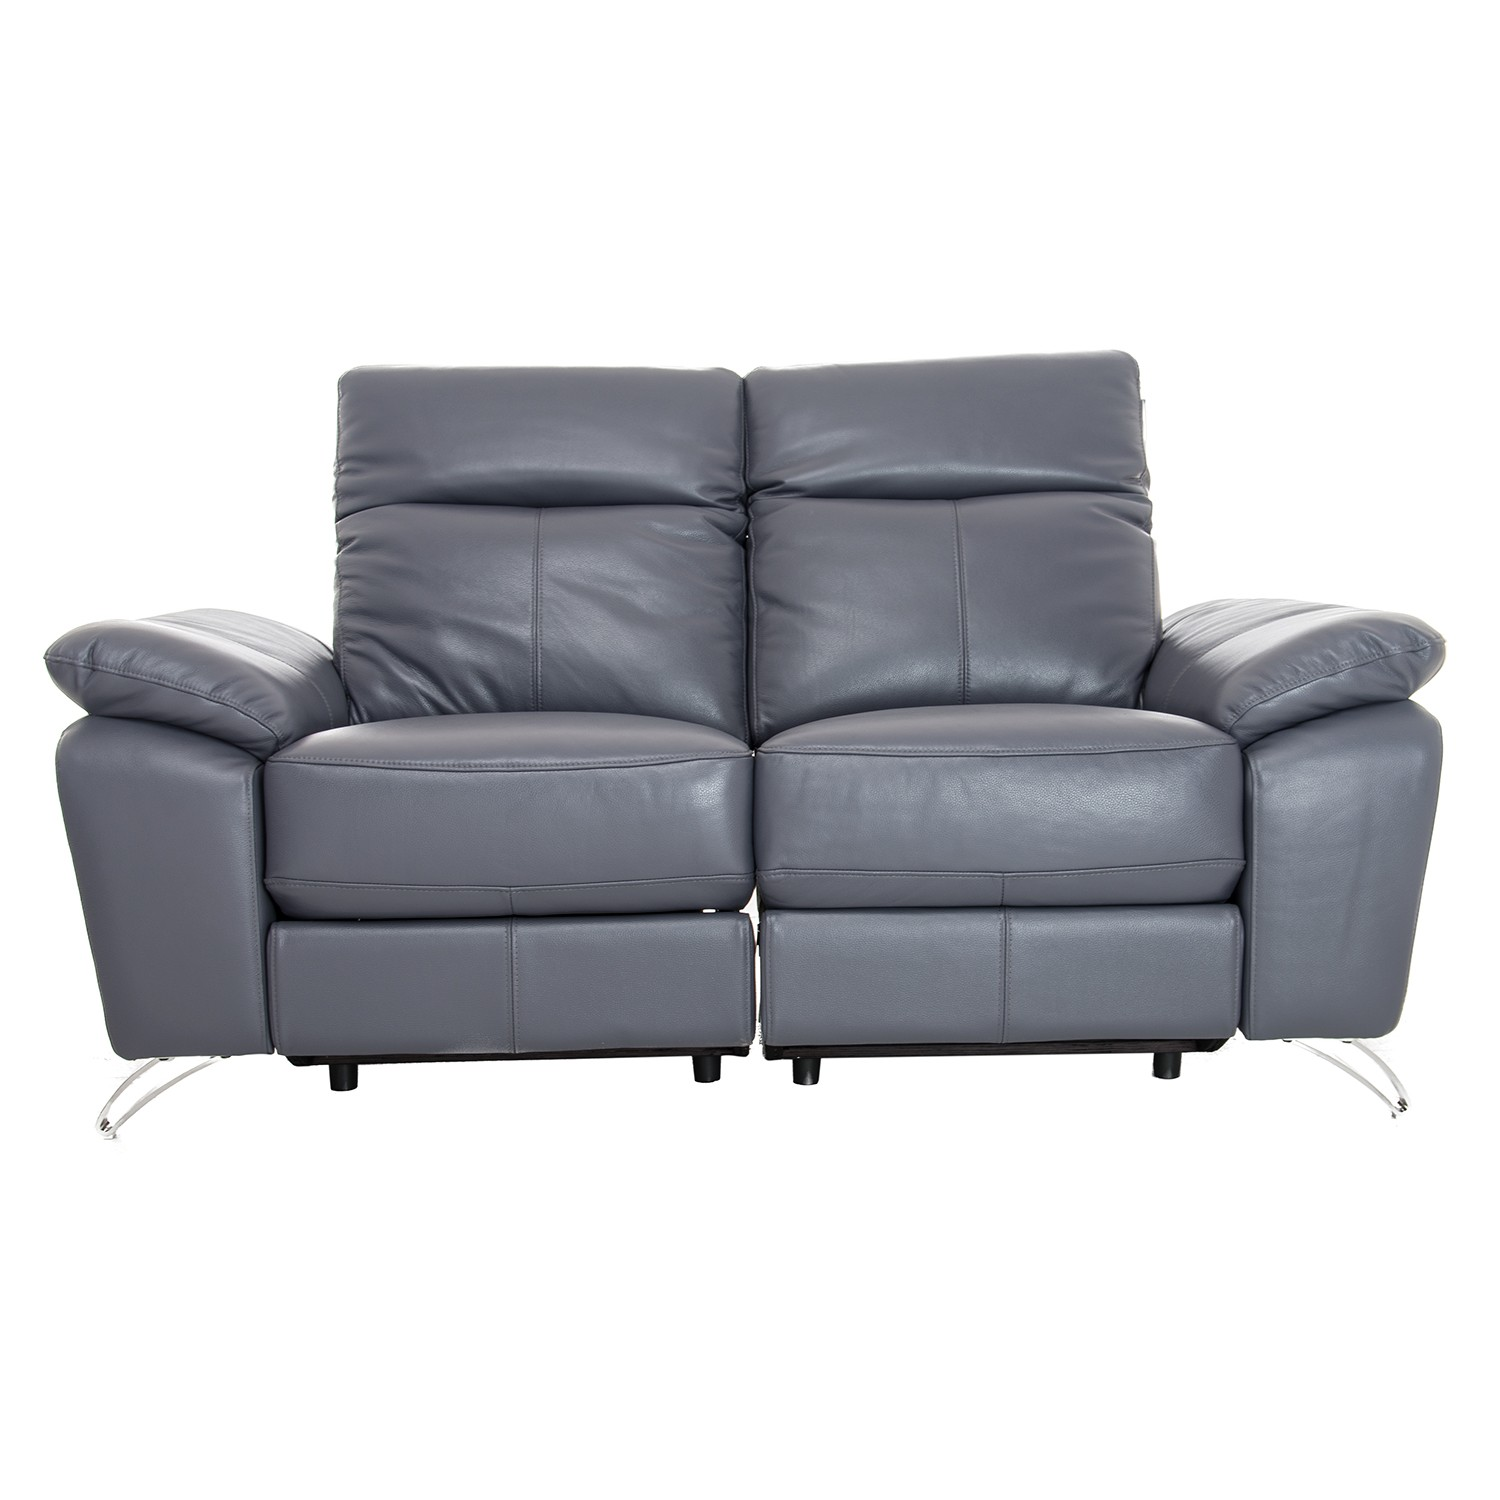 Vivaldi Two Seater Power Recliner Leather Sofa